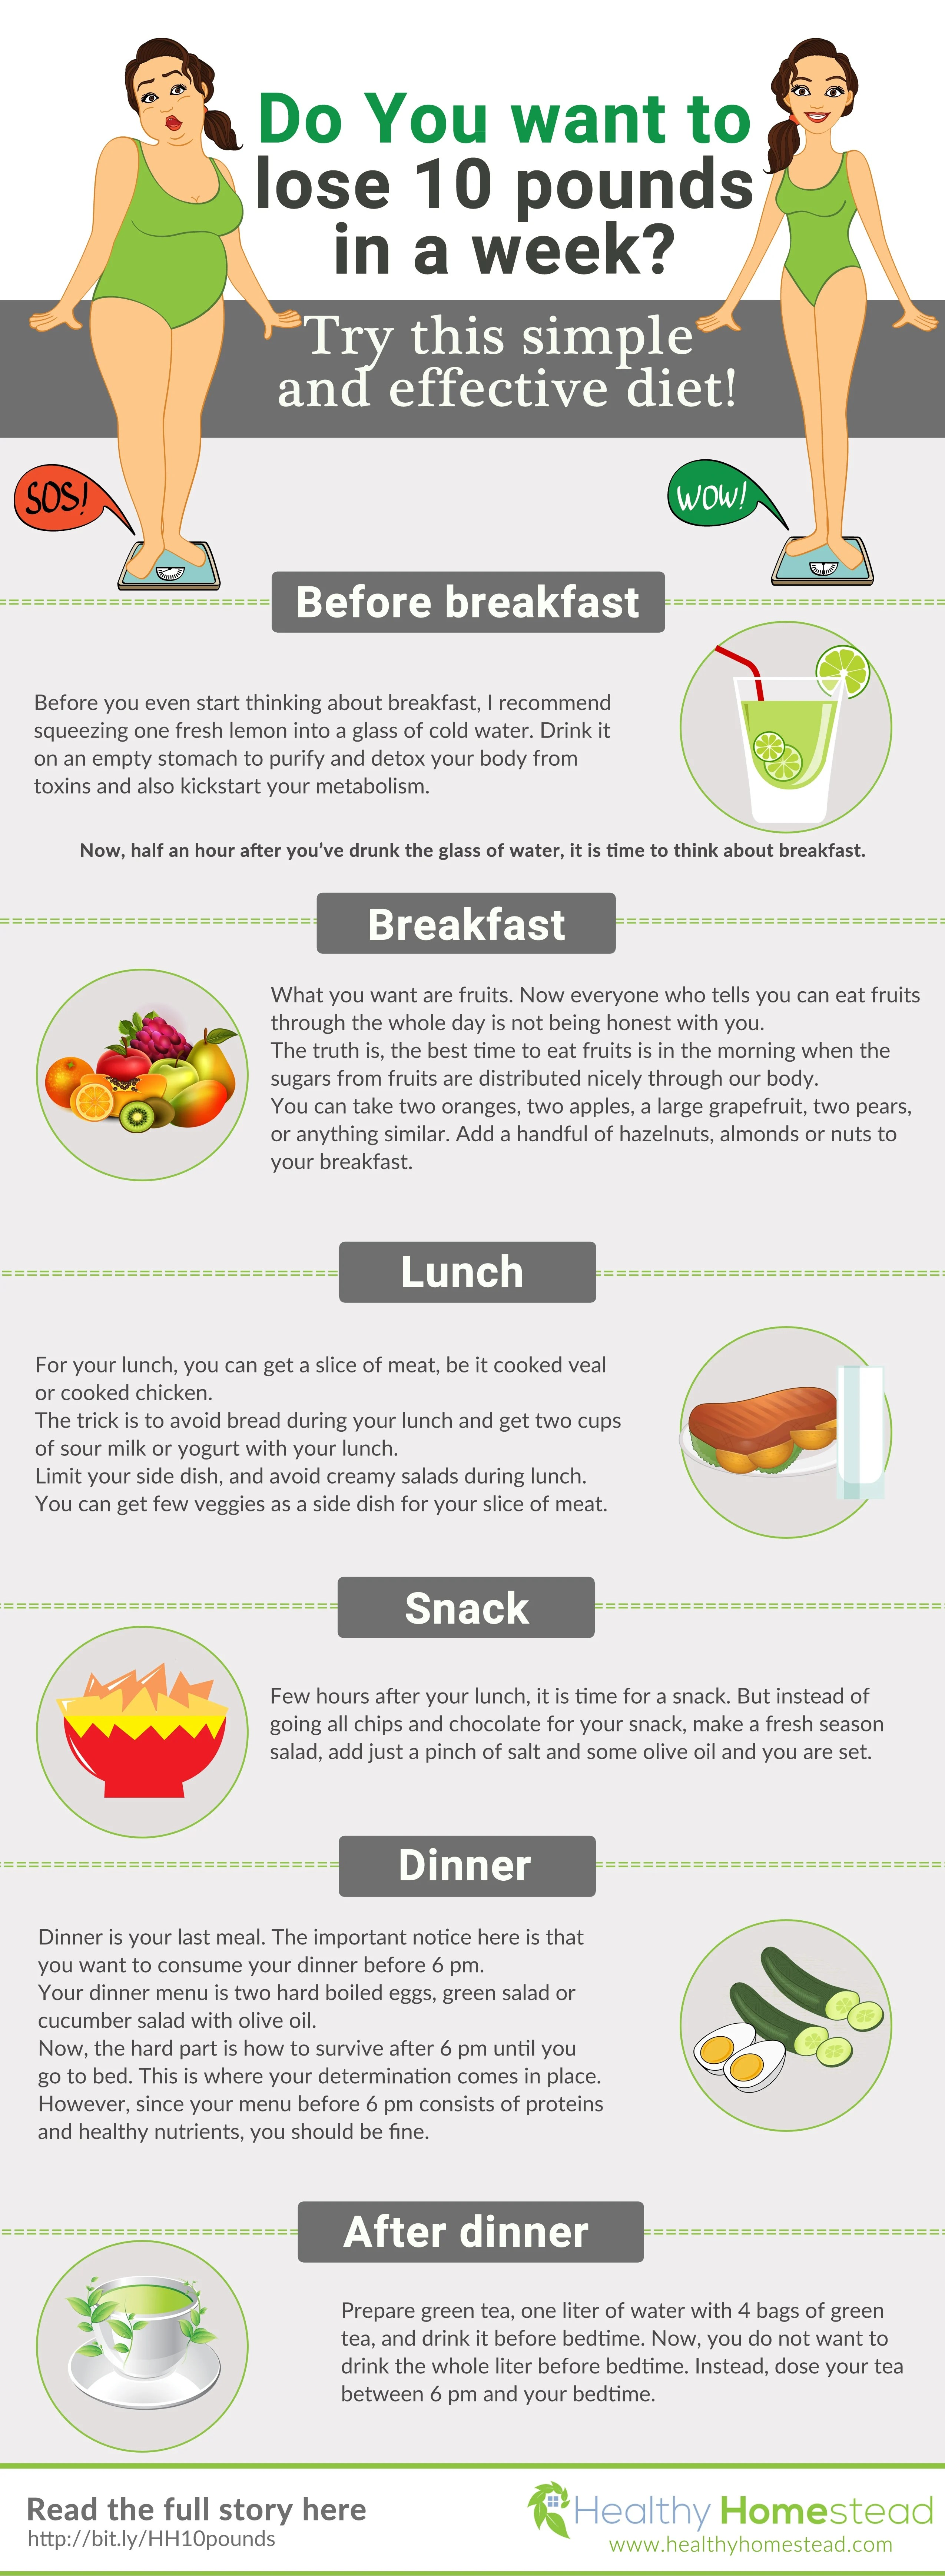 What To Eat For Fast Weight Loss This Simple Diet Can Help You Lose 10 Pounds In A Week